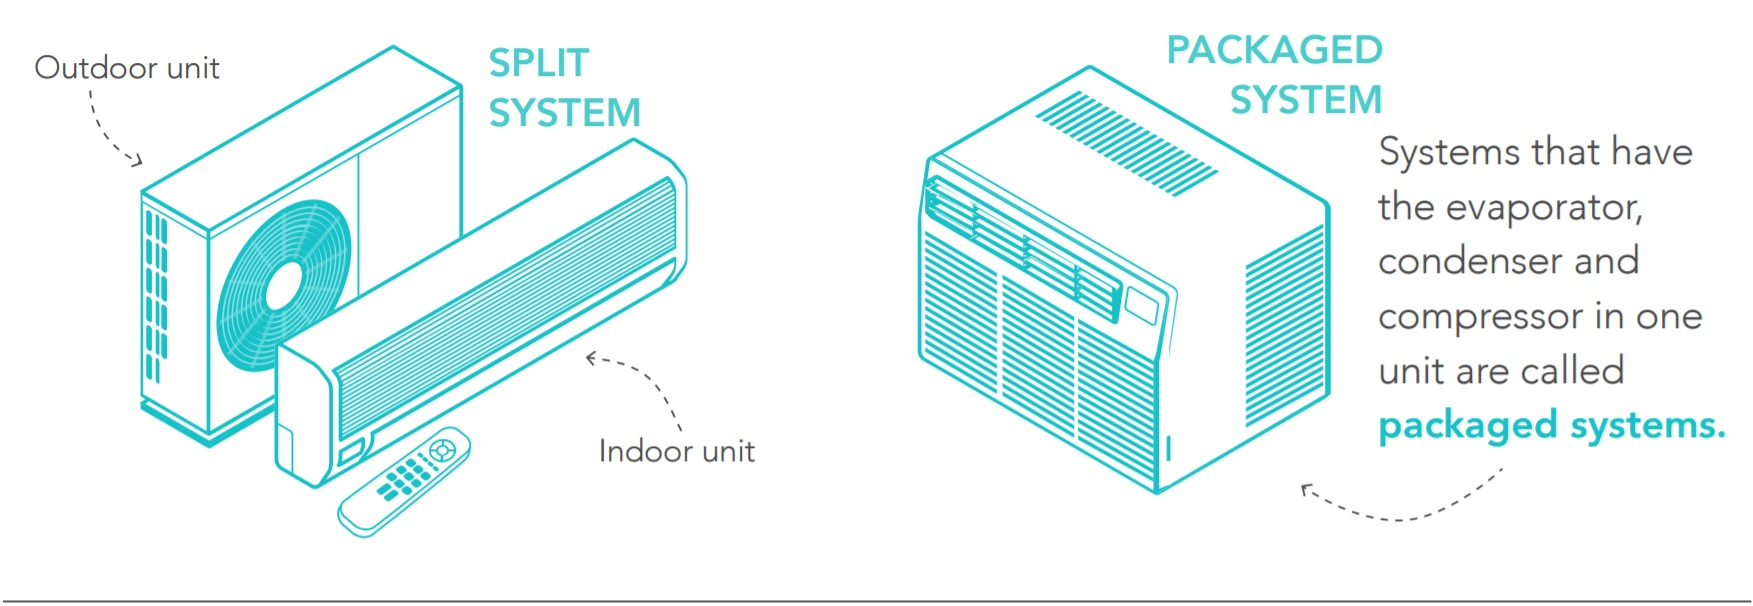 Home Air Conditioning - What is a Split A/C System?